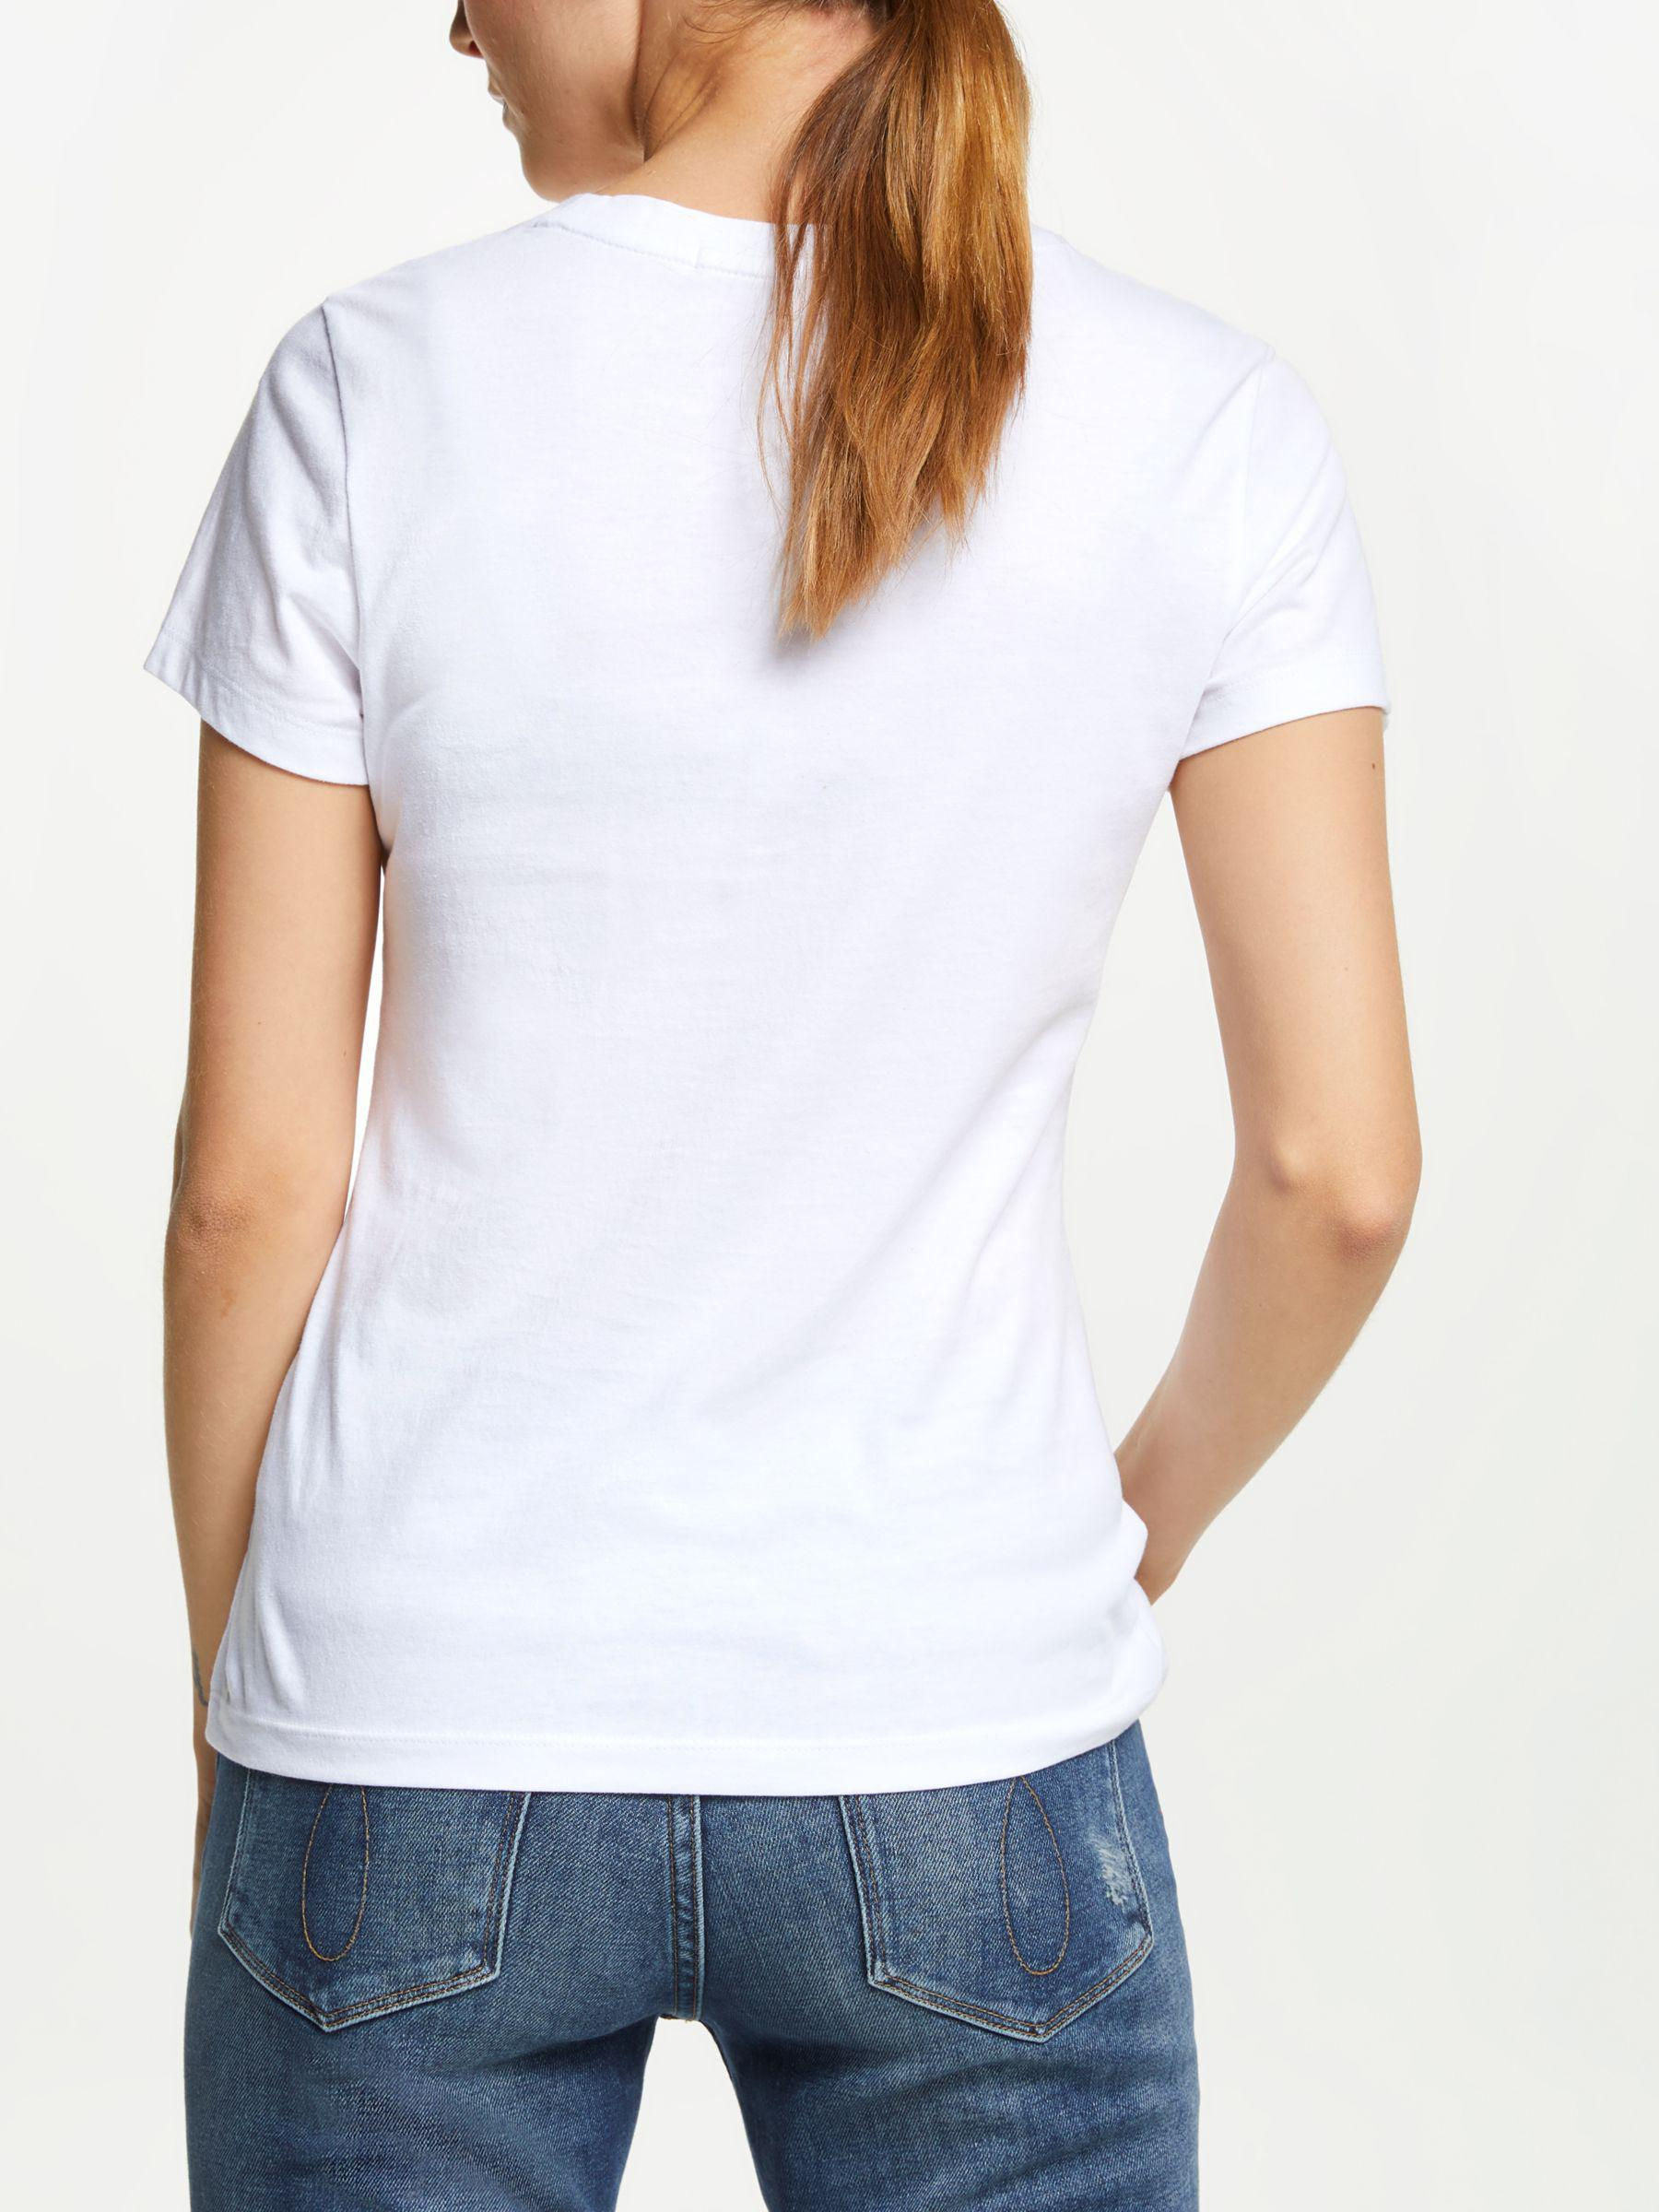 7af95a76 Calvin Klein Jeans Institutional Logo T-shirt in White - Lyst